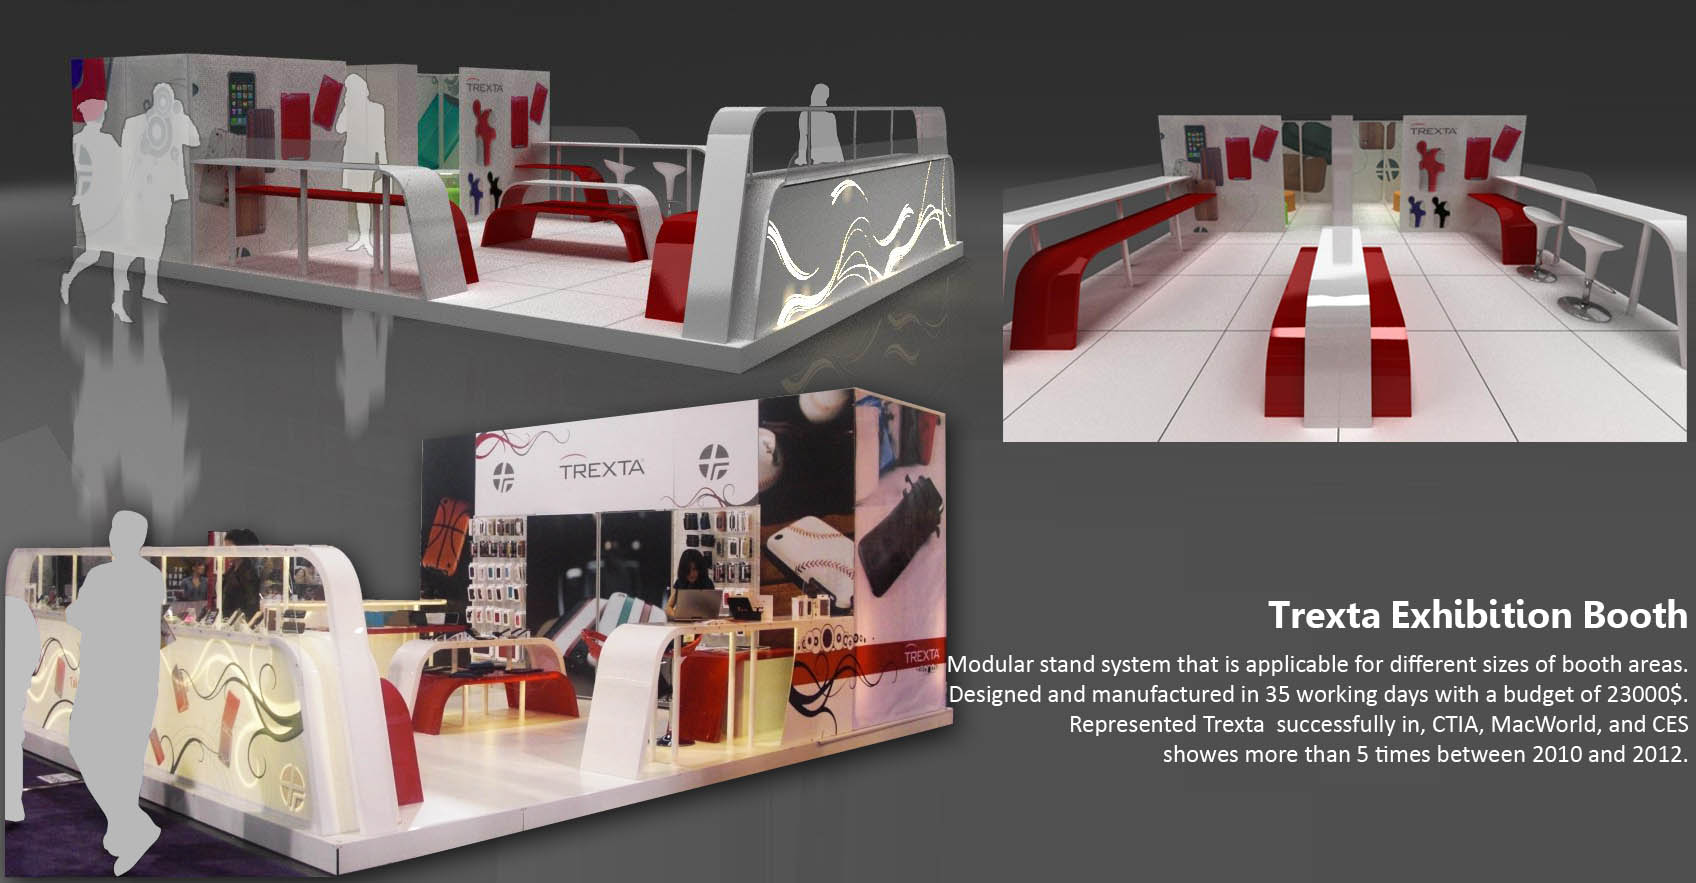 Exhibition Booth Usa : Trexta usa exhibition booth by hale surmeli at coroflot